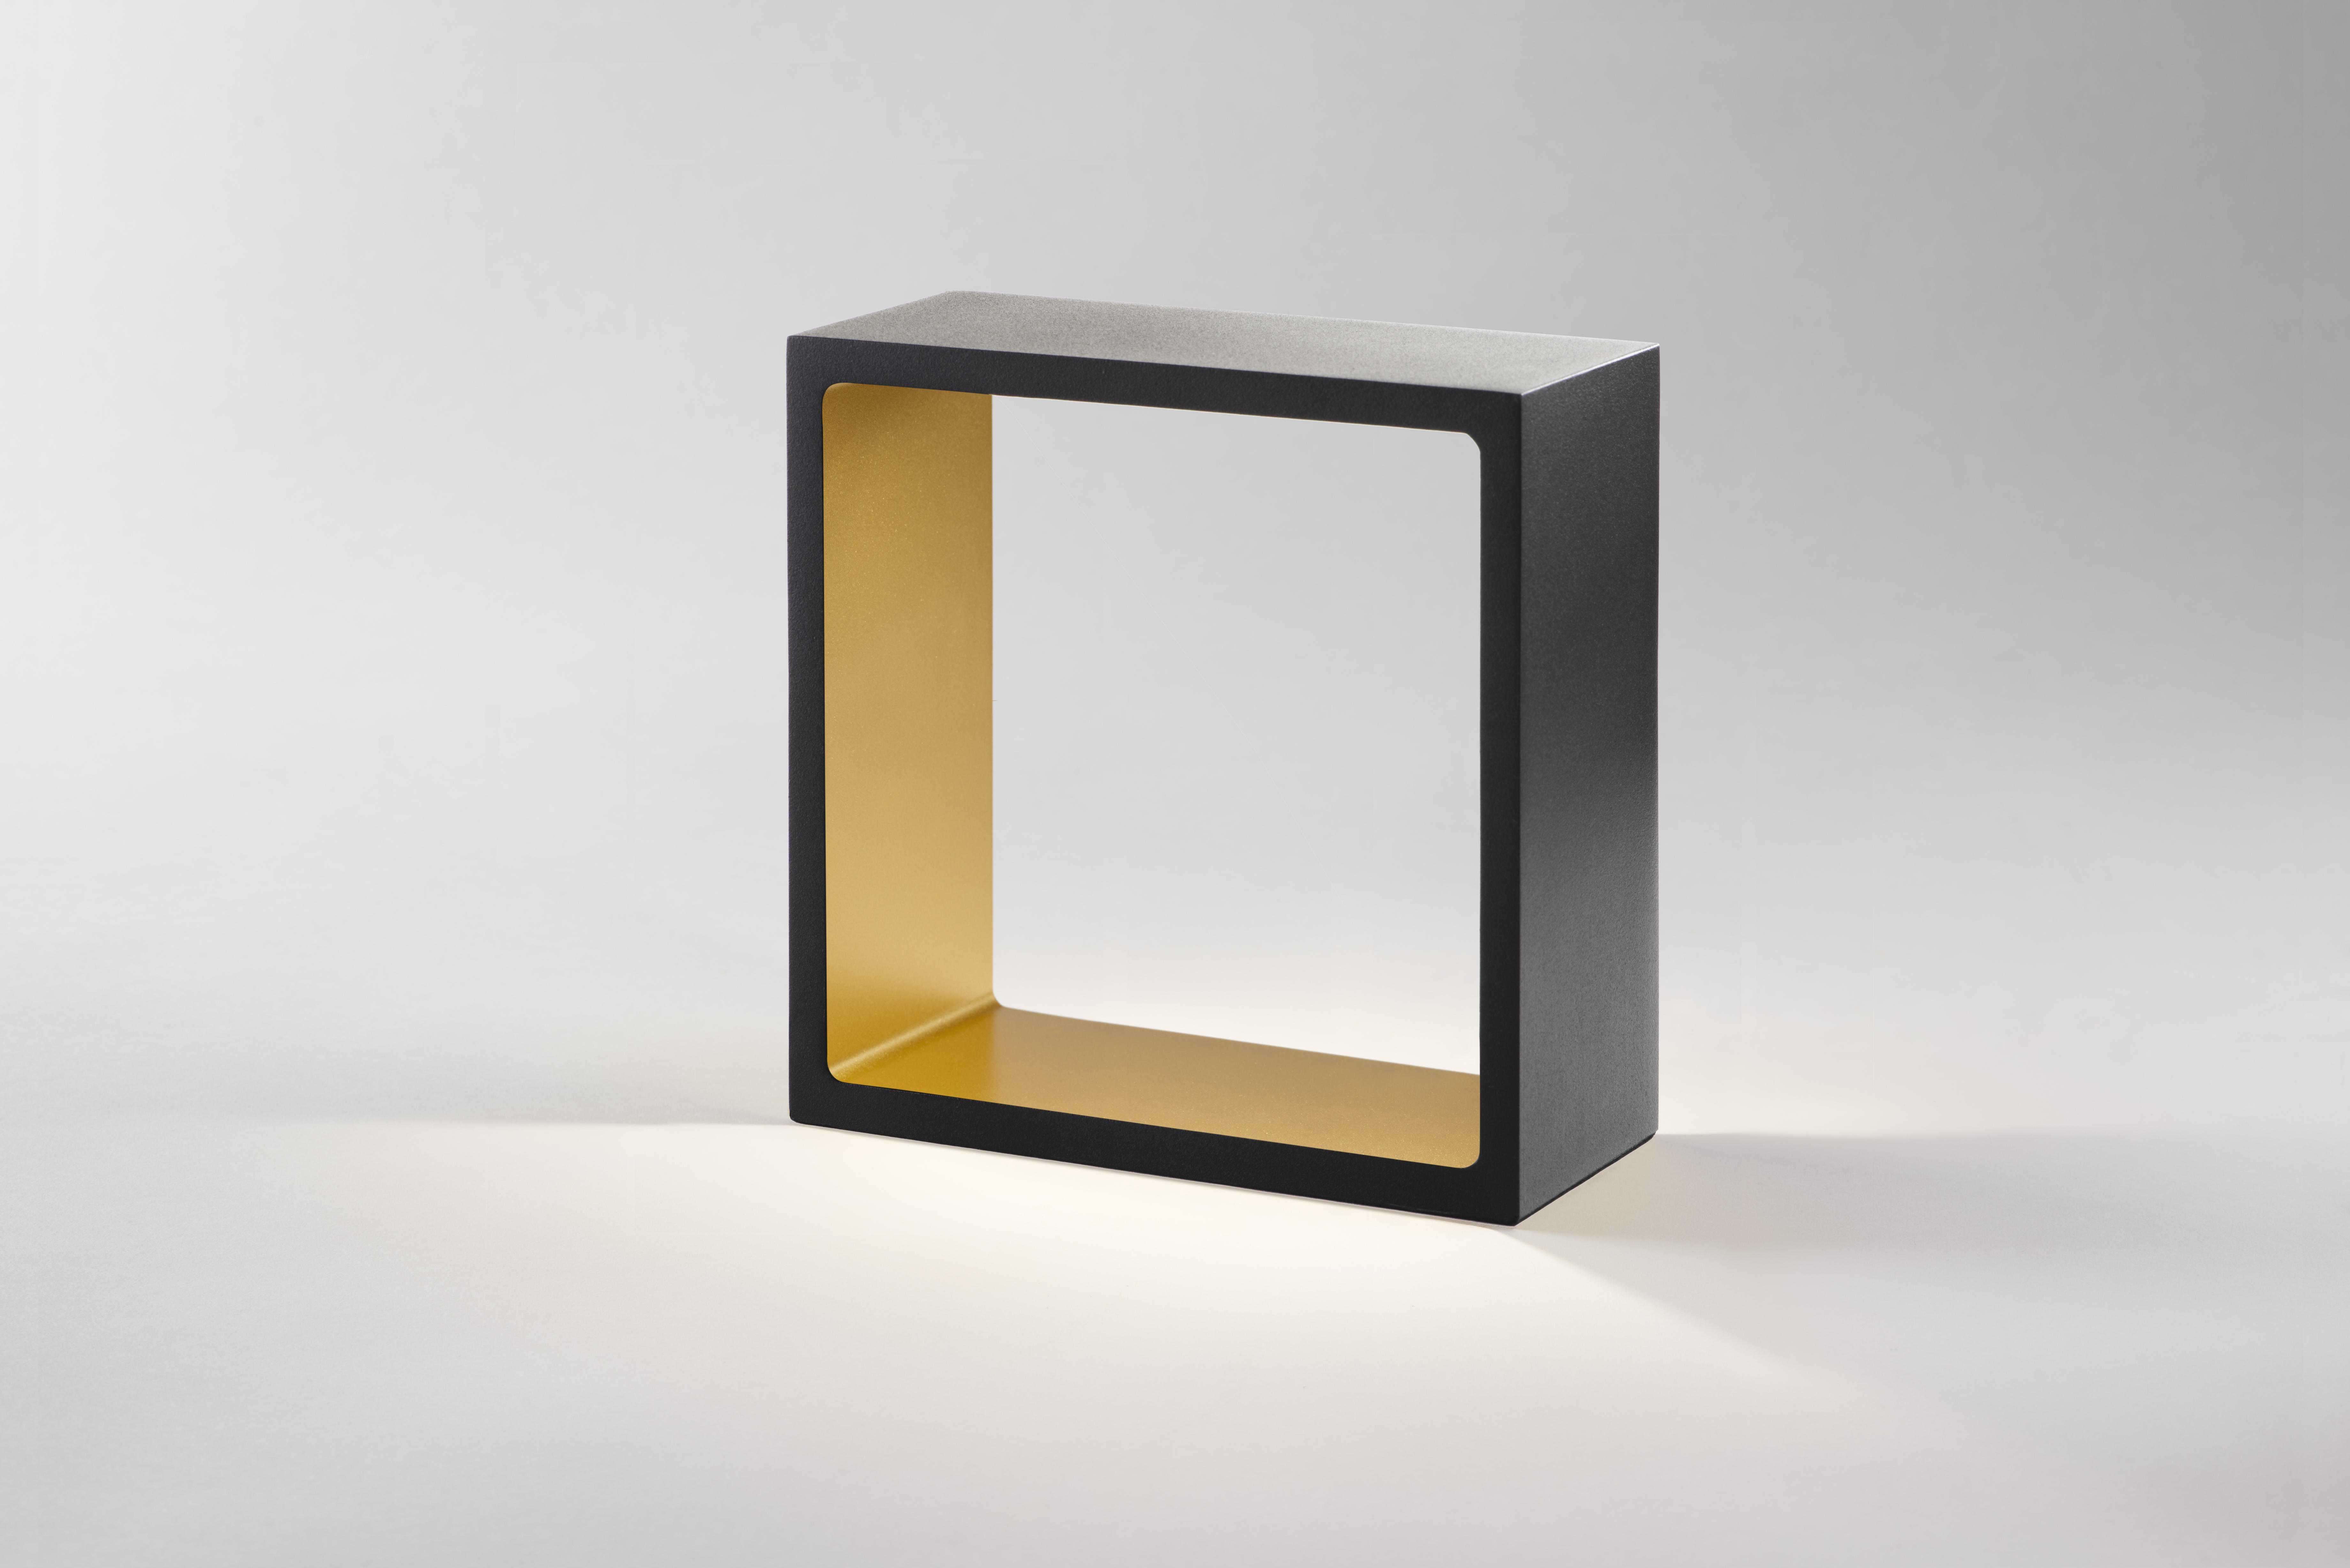 FUSION TOUCH BORDLAMPE SORT/GULD